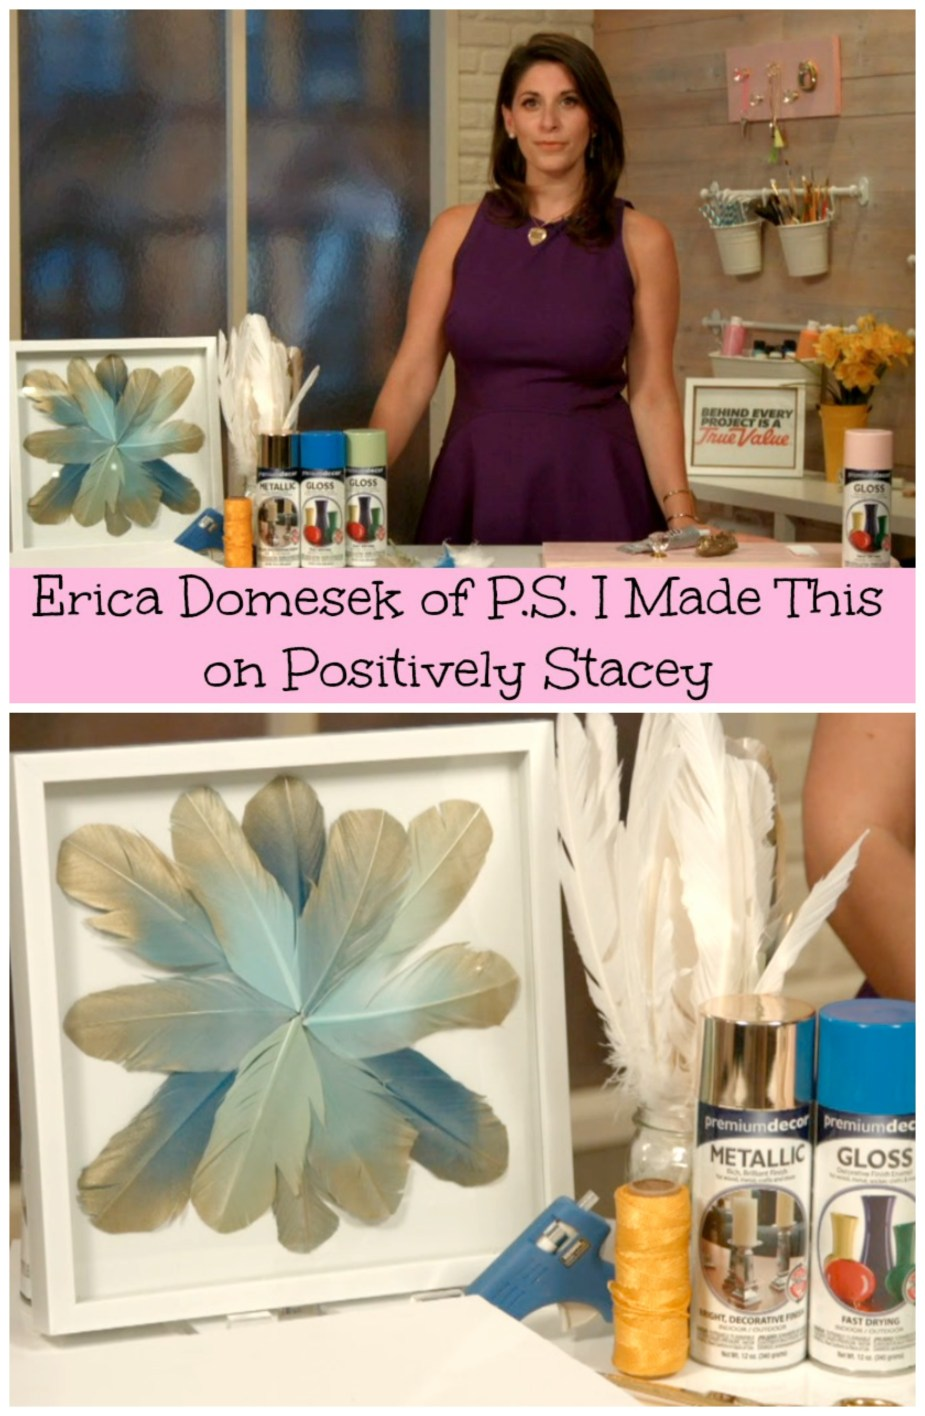 Let's get crafty with Erica Domesek!